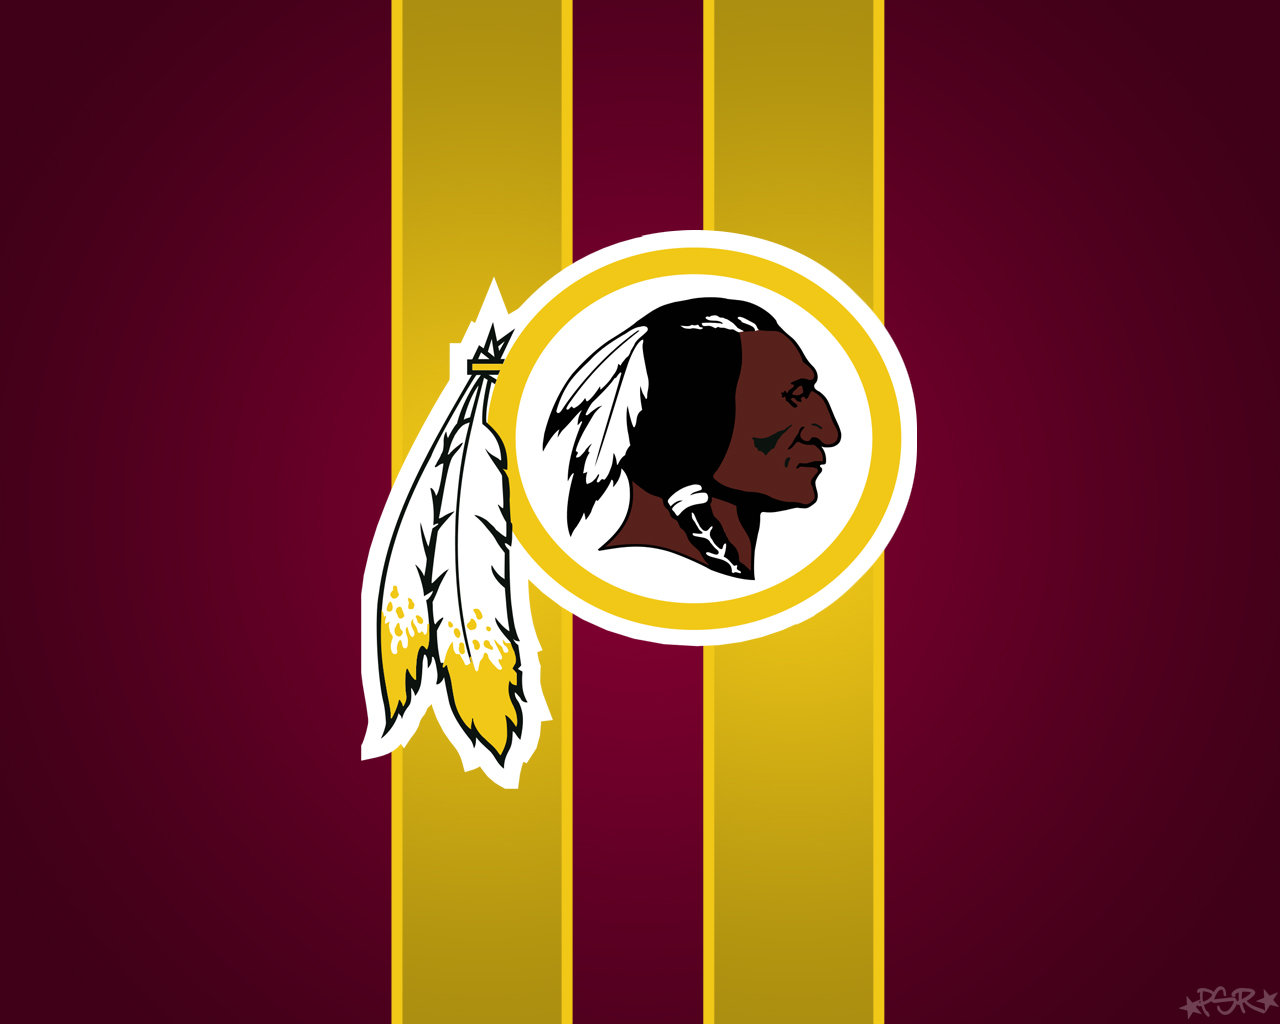 Washington redskins wallpapers 1280x1024 desktop backgrounds download hd 1280x1024 washington redskins desktop background id210281 for free voltagebd Choice Image